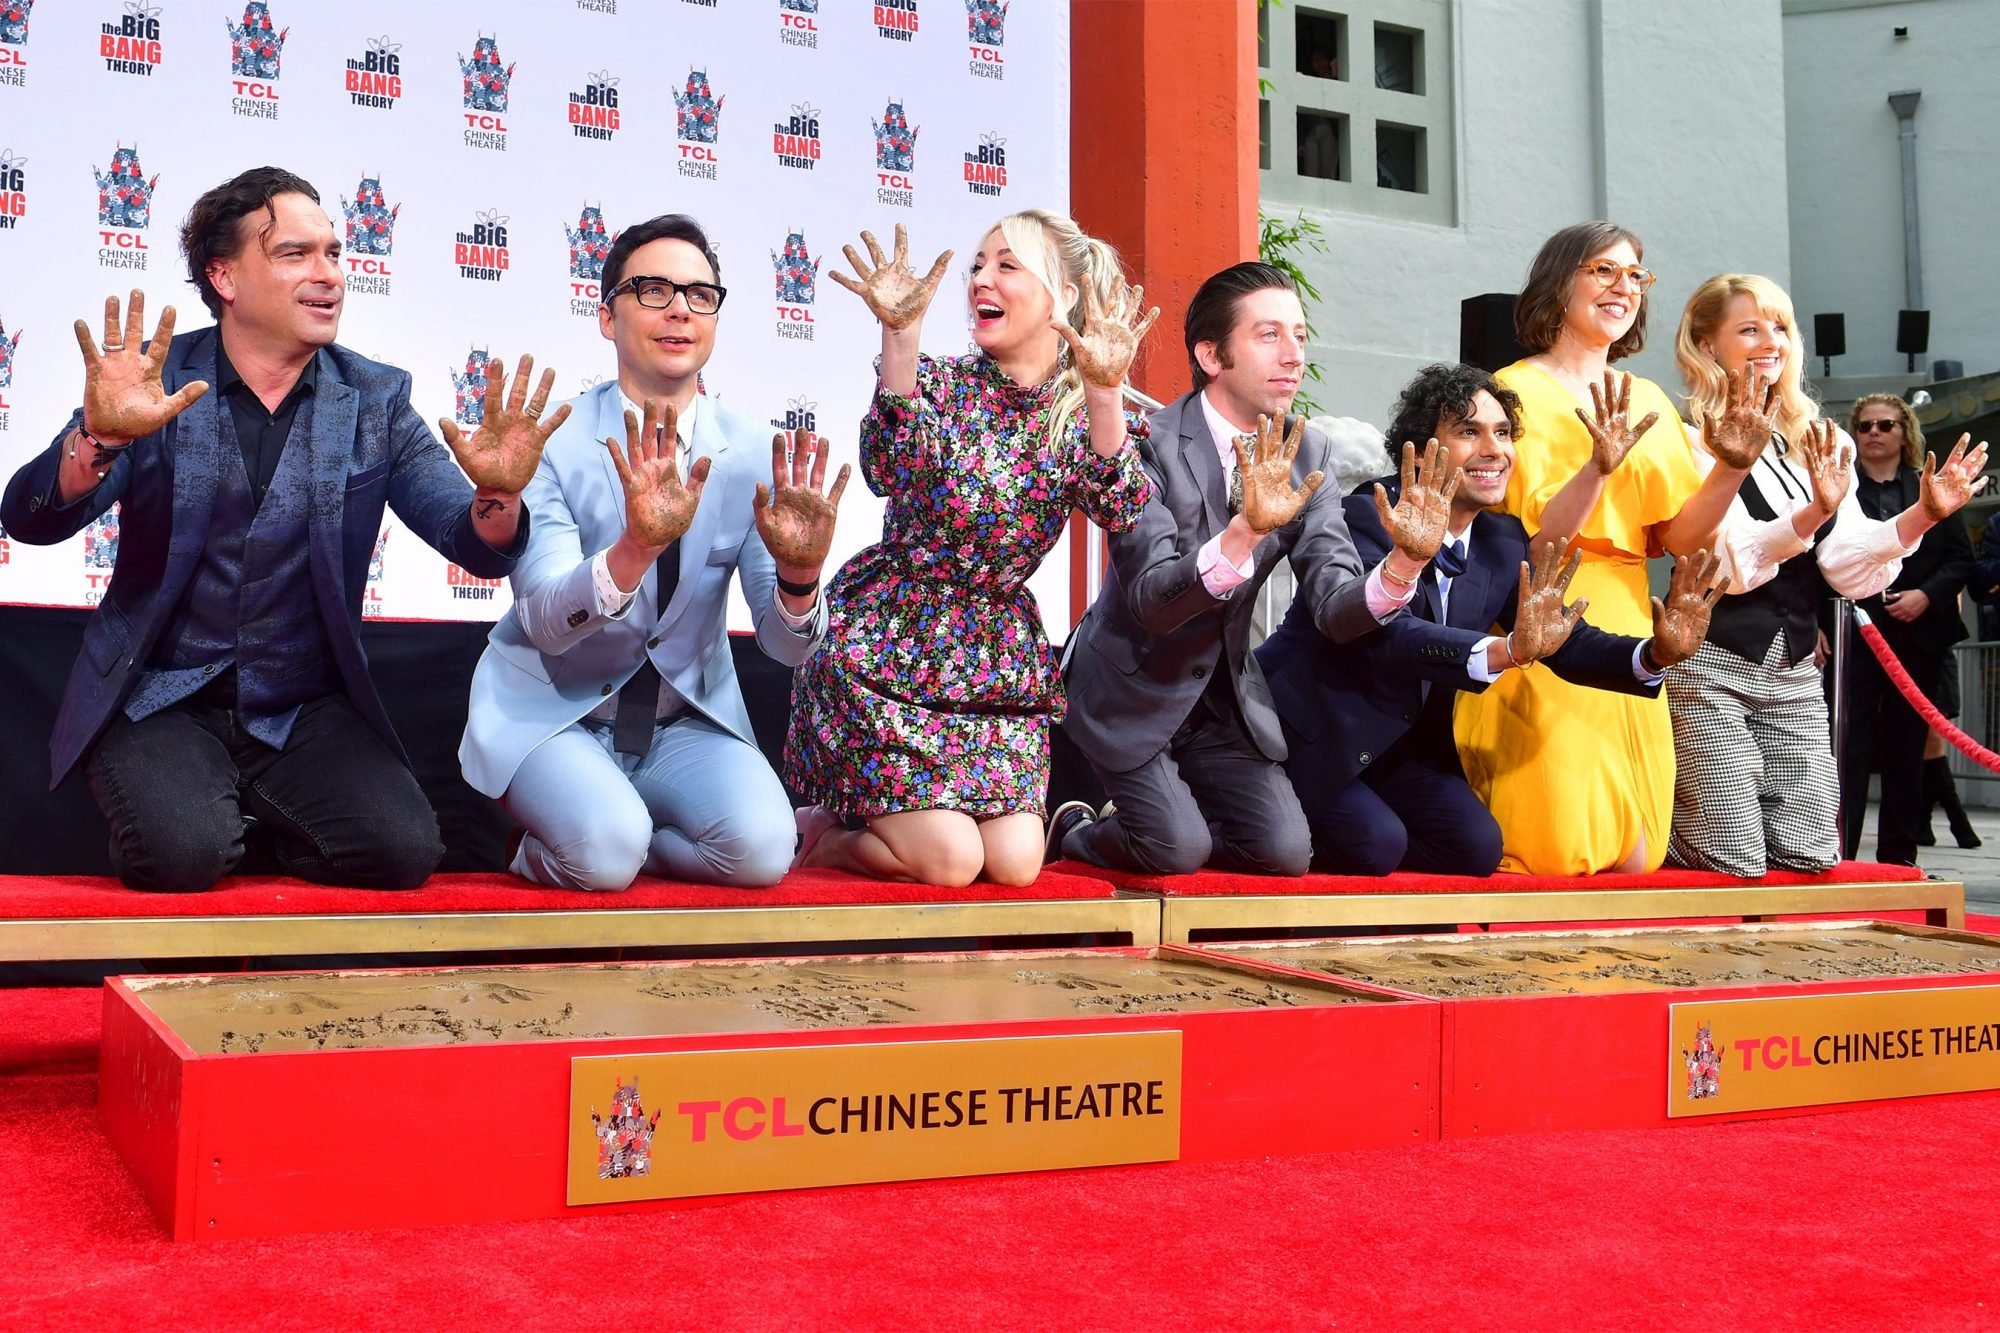 "The cast from the television comedy series ""The Big Bang Theory"" display their hands during Hand and Footprint Ceremony at the TCL Chinese Theater in Hollywood, California on May 1, 2019. - The program's series finale on May 16 ending a run as the longest-running multi camera series in television history. From left to Right are: Johnny Galecki, Jim Parsons, Kaley Cuoco, Simon Helberg, Kunal Nayyar, Mayim Bialik and Melissa Rauch. (Photo by Frederic J. BROWN / AFP) (Photo credit should read FREDERIC J. BROWN/AFP/Getty Images)"